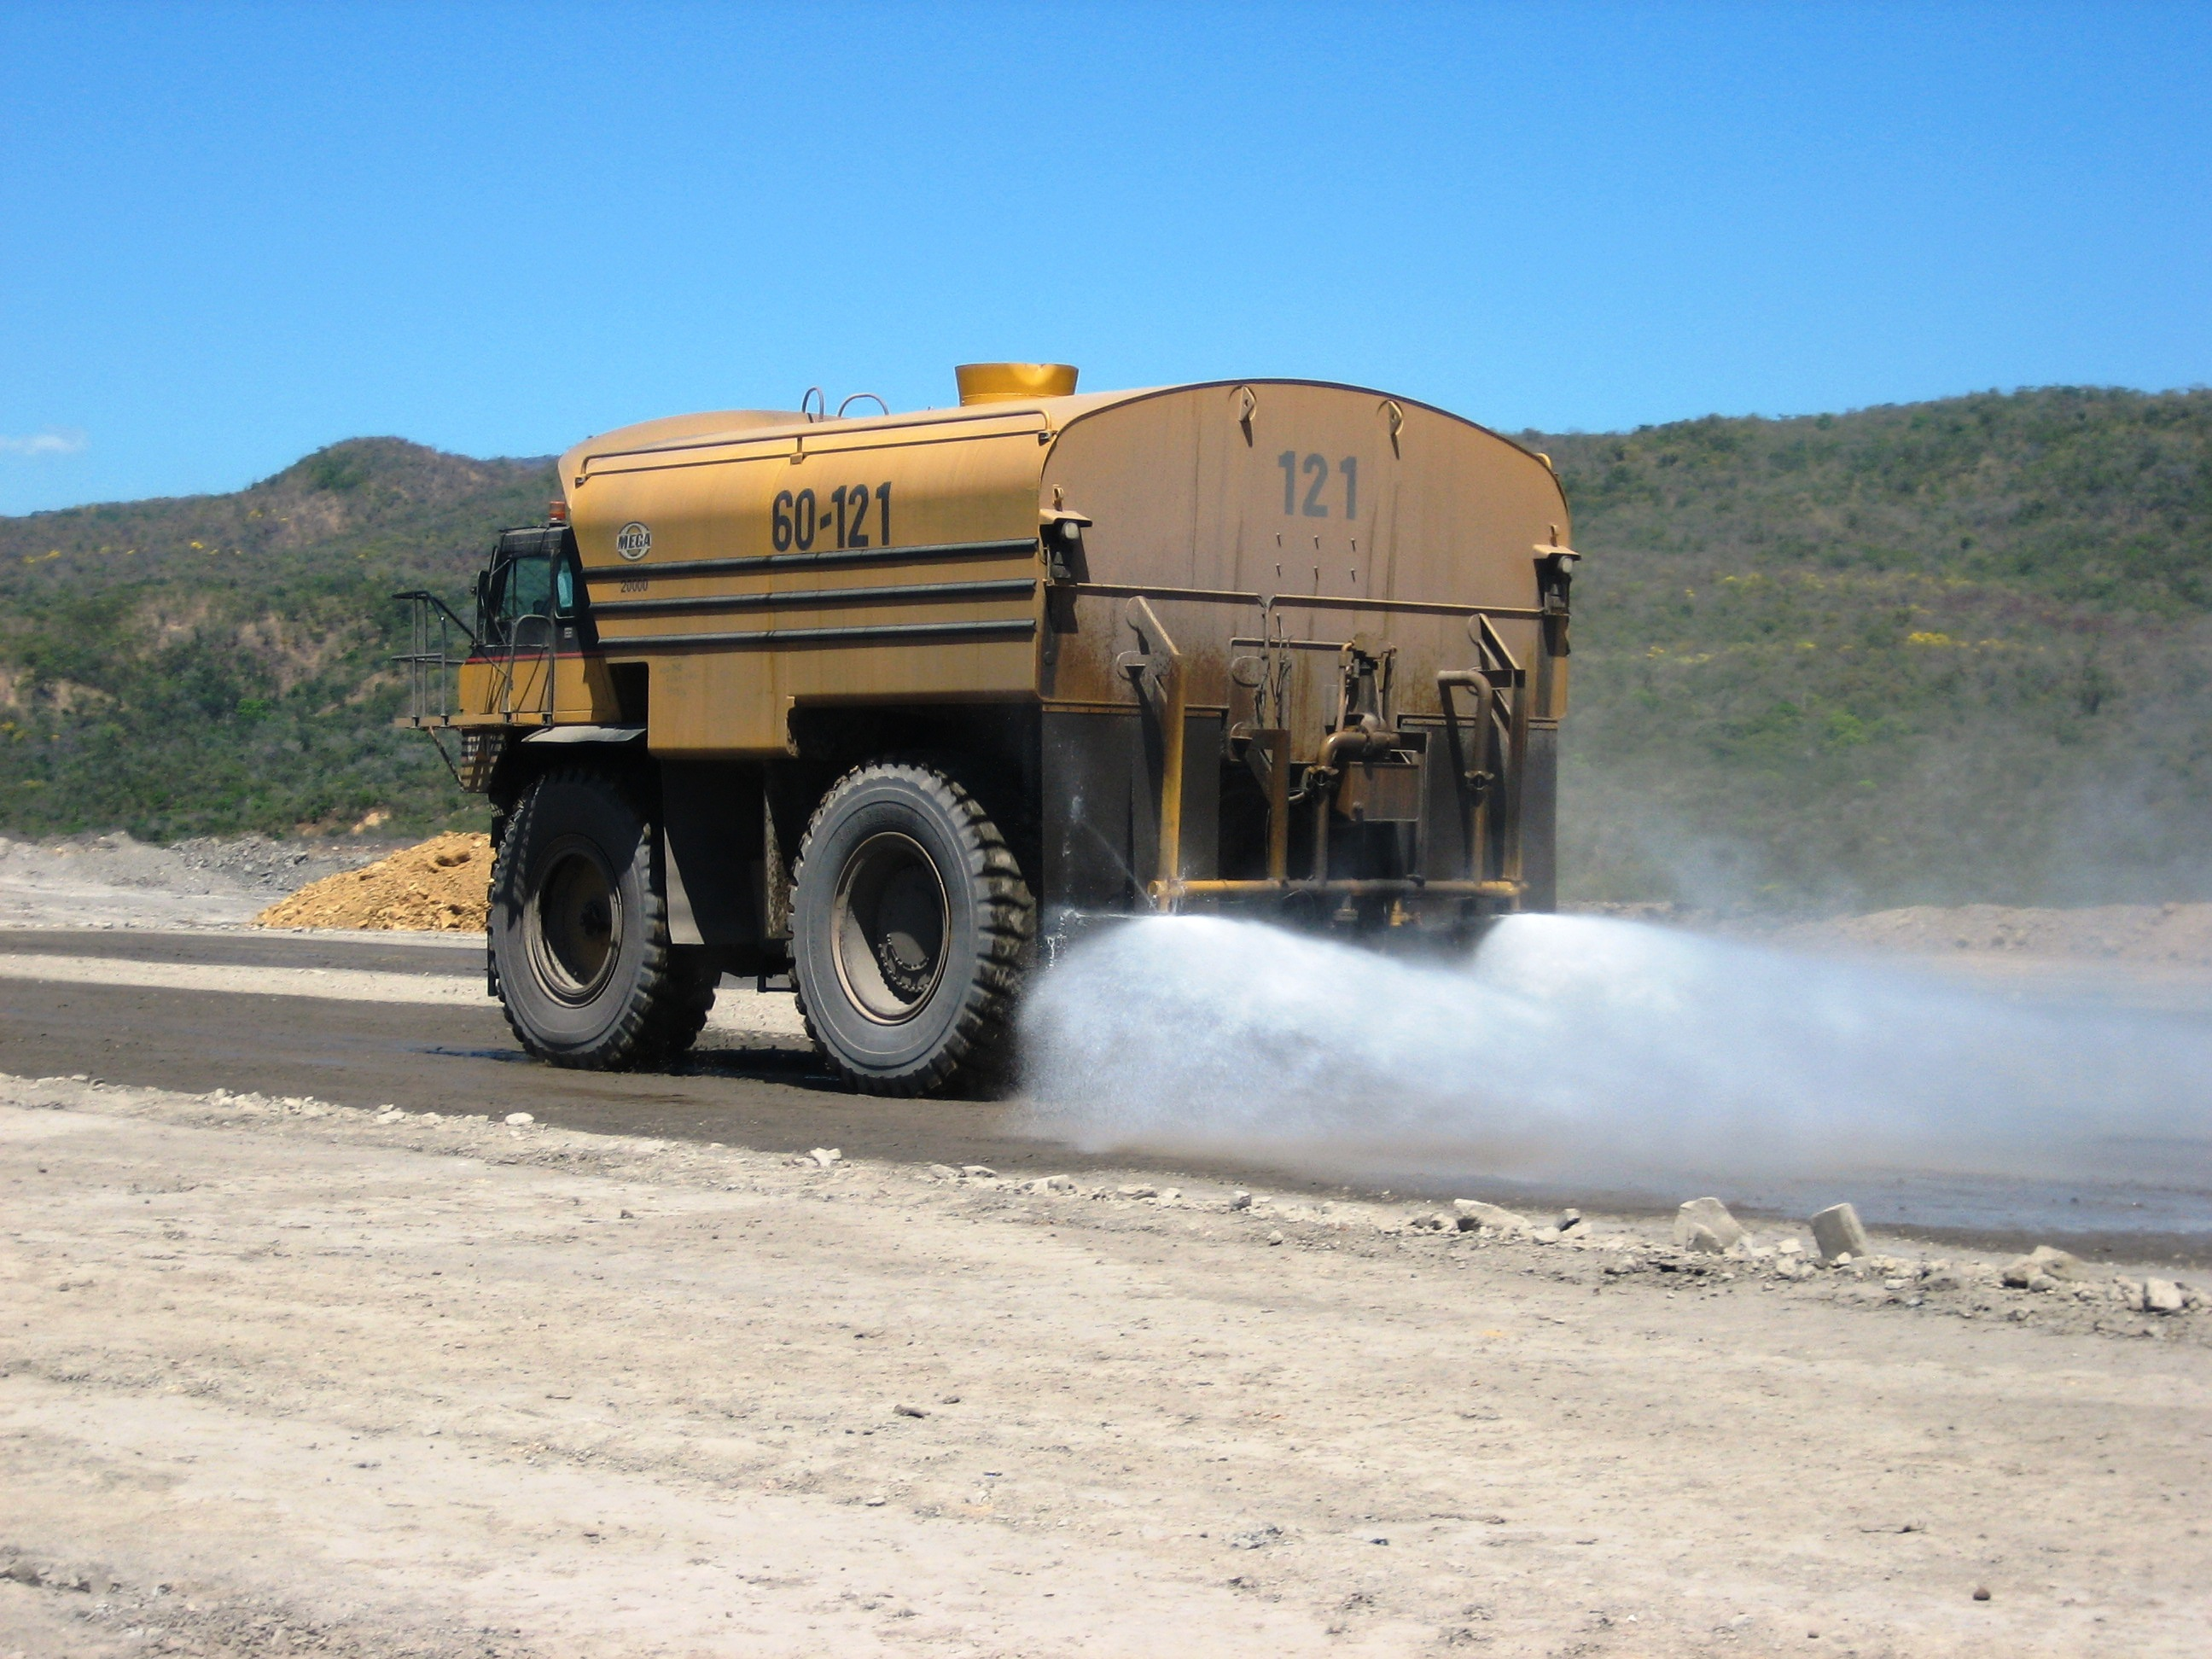 RST haul road stabilisers and dust suppressants boosting productivity at autonomous mines